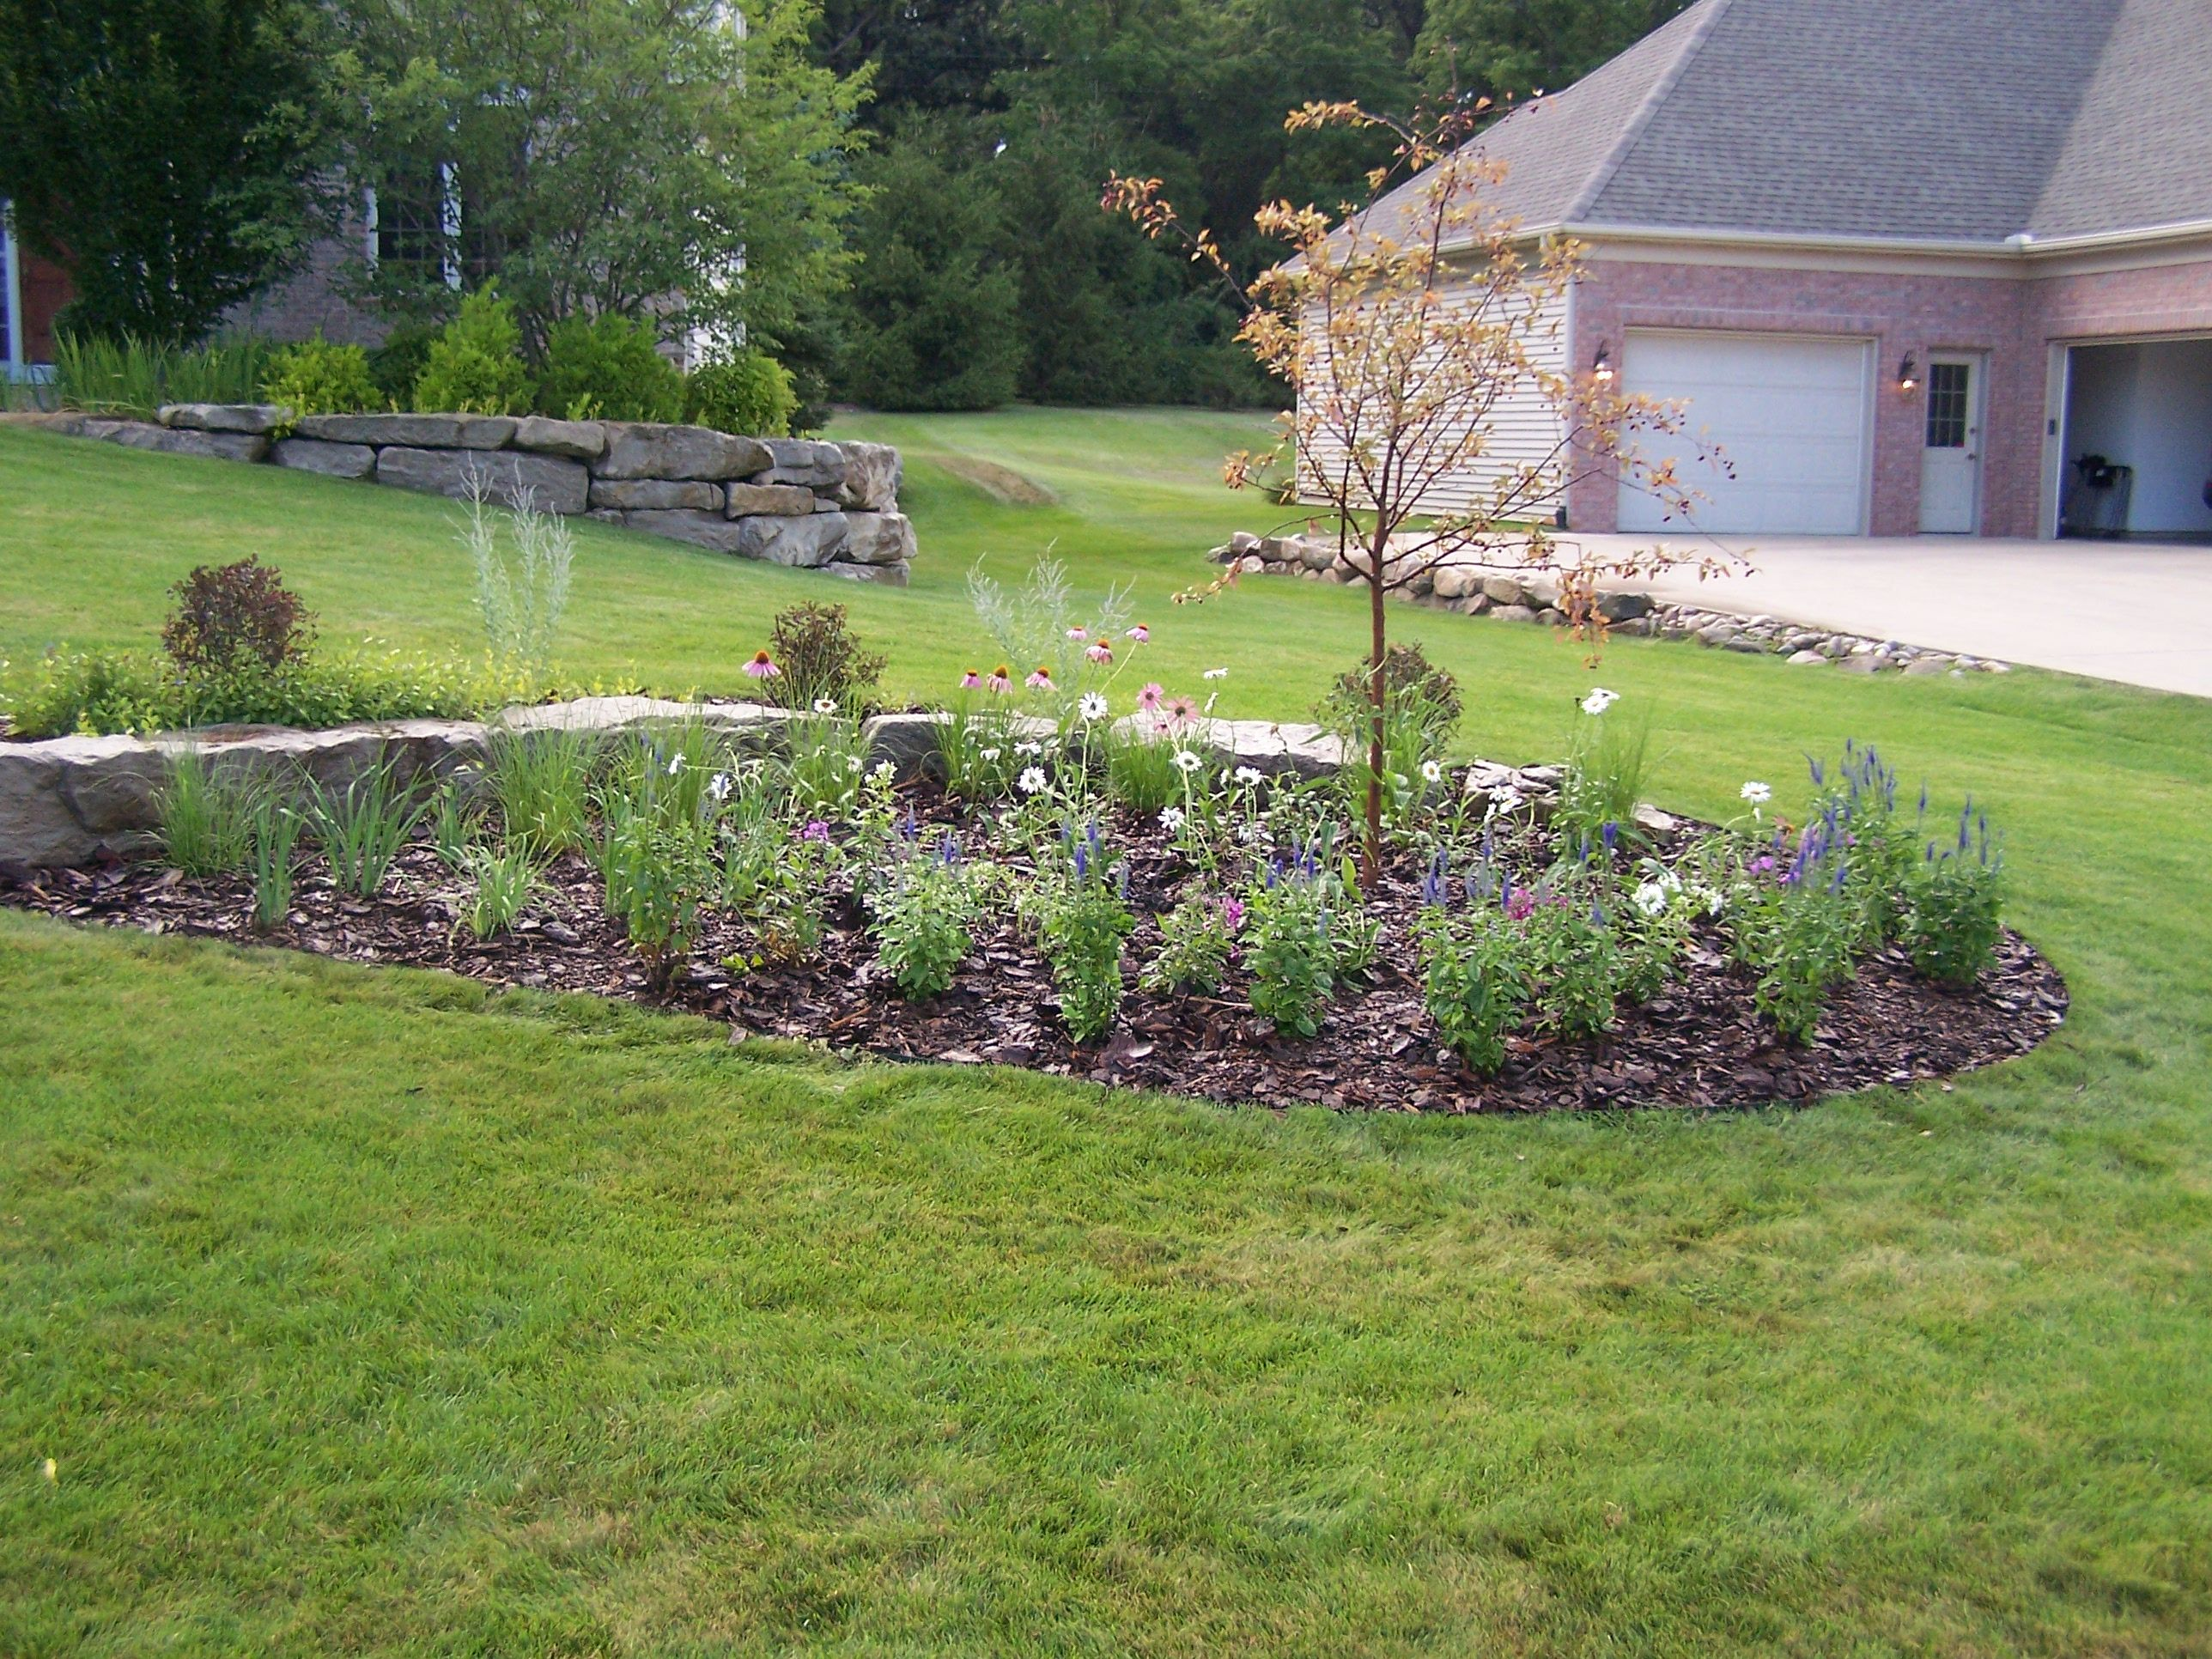 Farm Landscape Design Ideas - Rocks Boulders In Landscaping Il